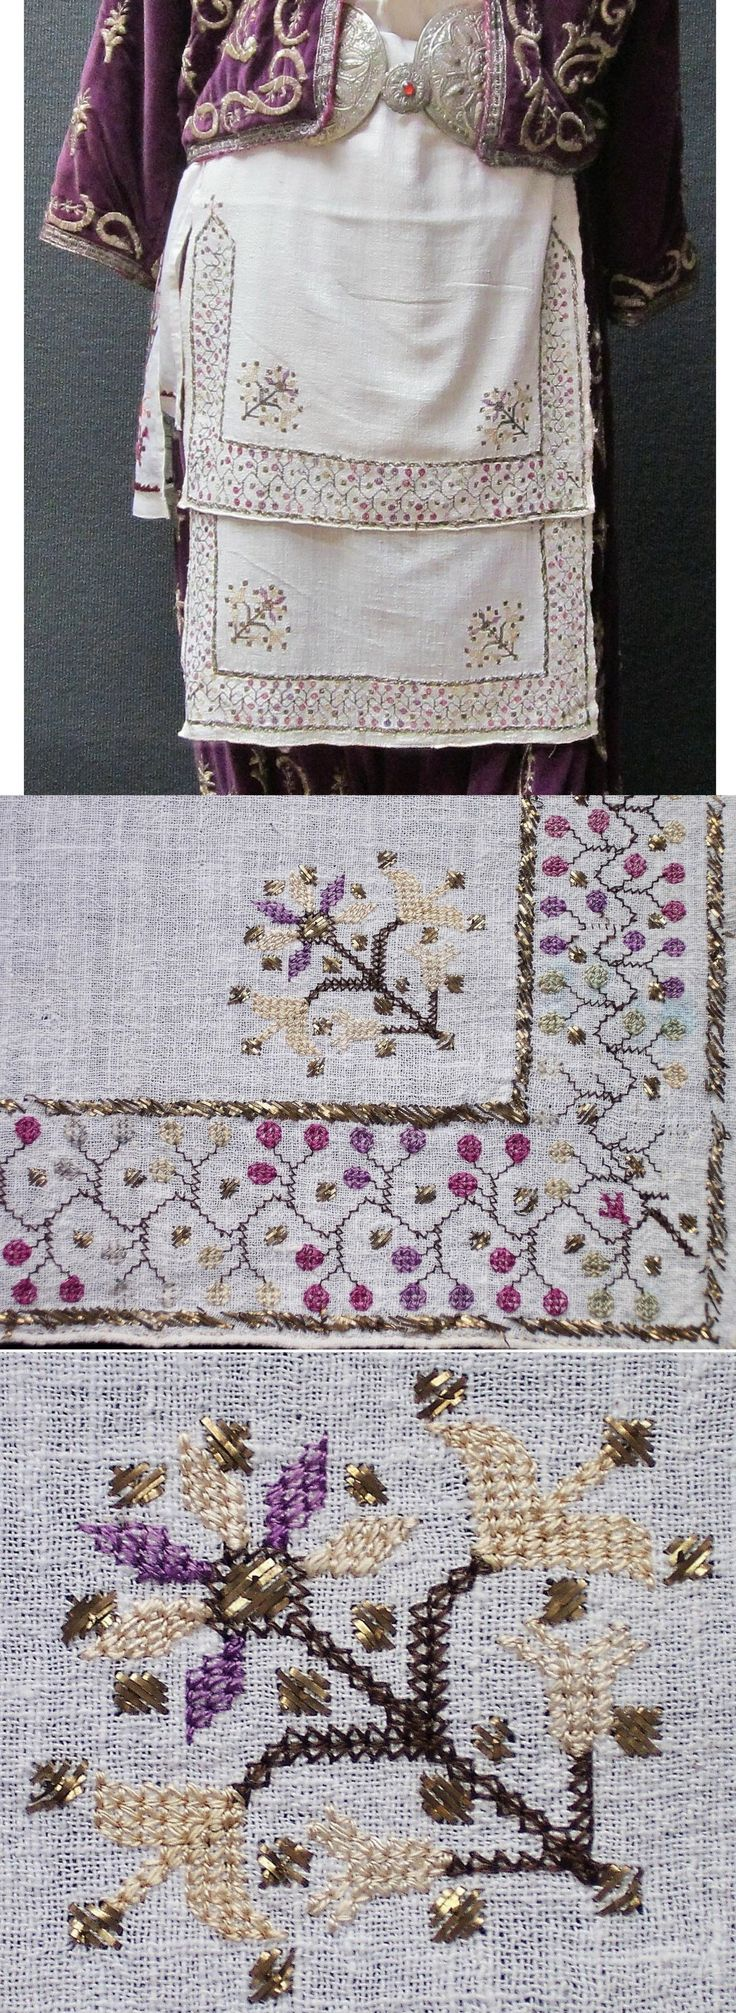 Linen 'makrama' (embroidered napkin); also used in Thrace and northwestern Anatolia as festive 'önlük' (apron) by women. From the Marmara region, 2nd half of 19th century. The 'two-sided' embroidery (identical on both sides of the fabric) is executed in both multi-coloured silk and 'tel kırma' (motives obtained by sticking narrow metallic strips through the fabric and folding them). (Inv.nr. brdw042 - Kavak Costume Collection - Antwerpen/Belgium).